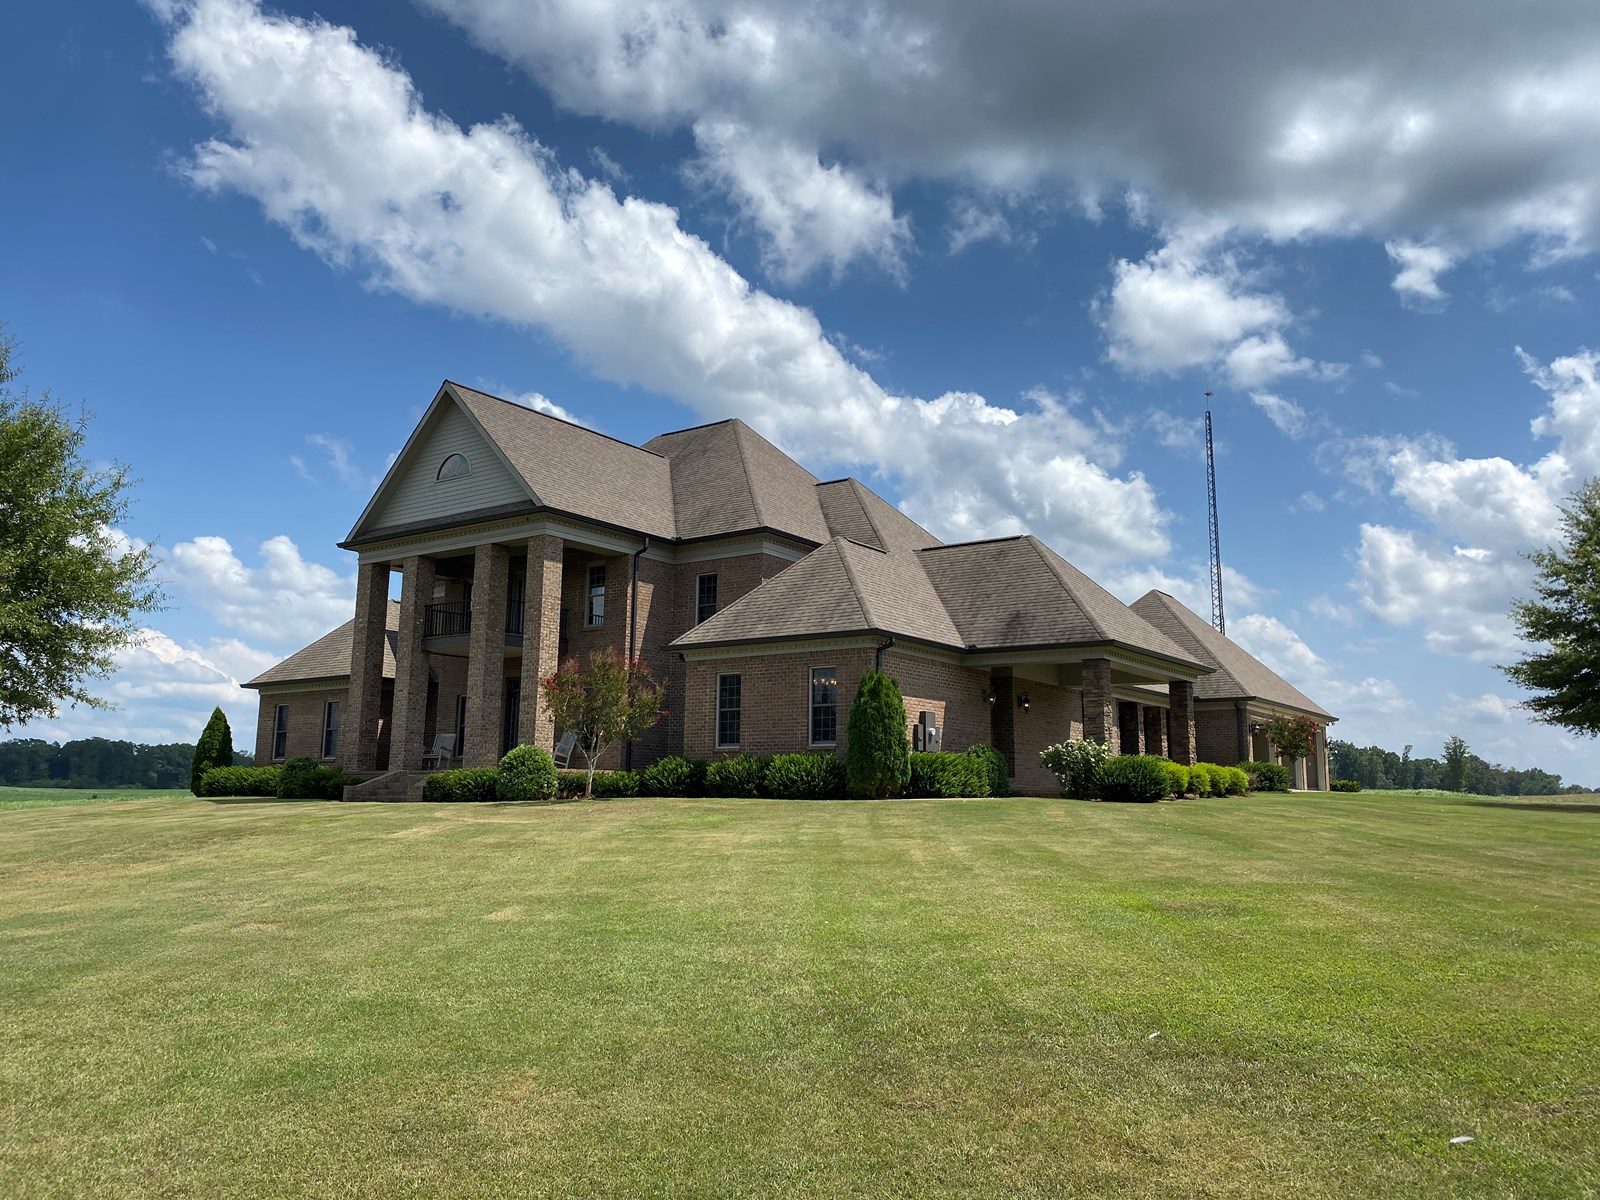 Private Luxury Farm For Sale in Tennessee with Lake